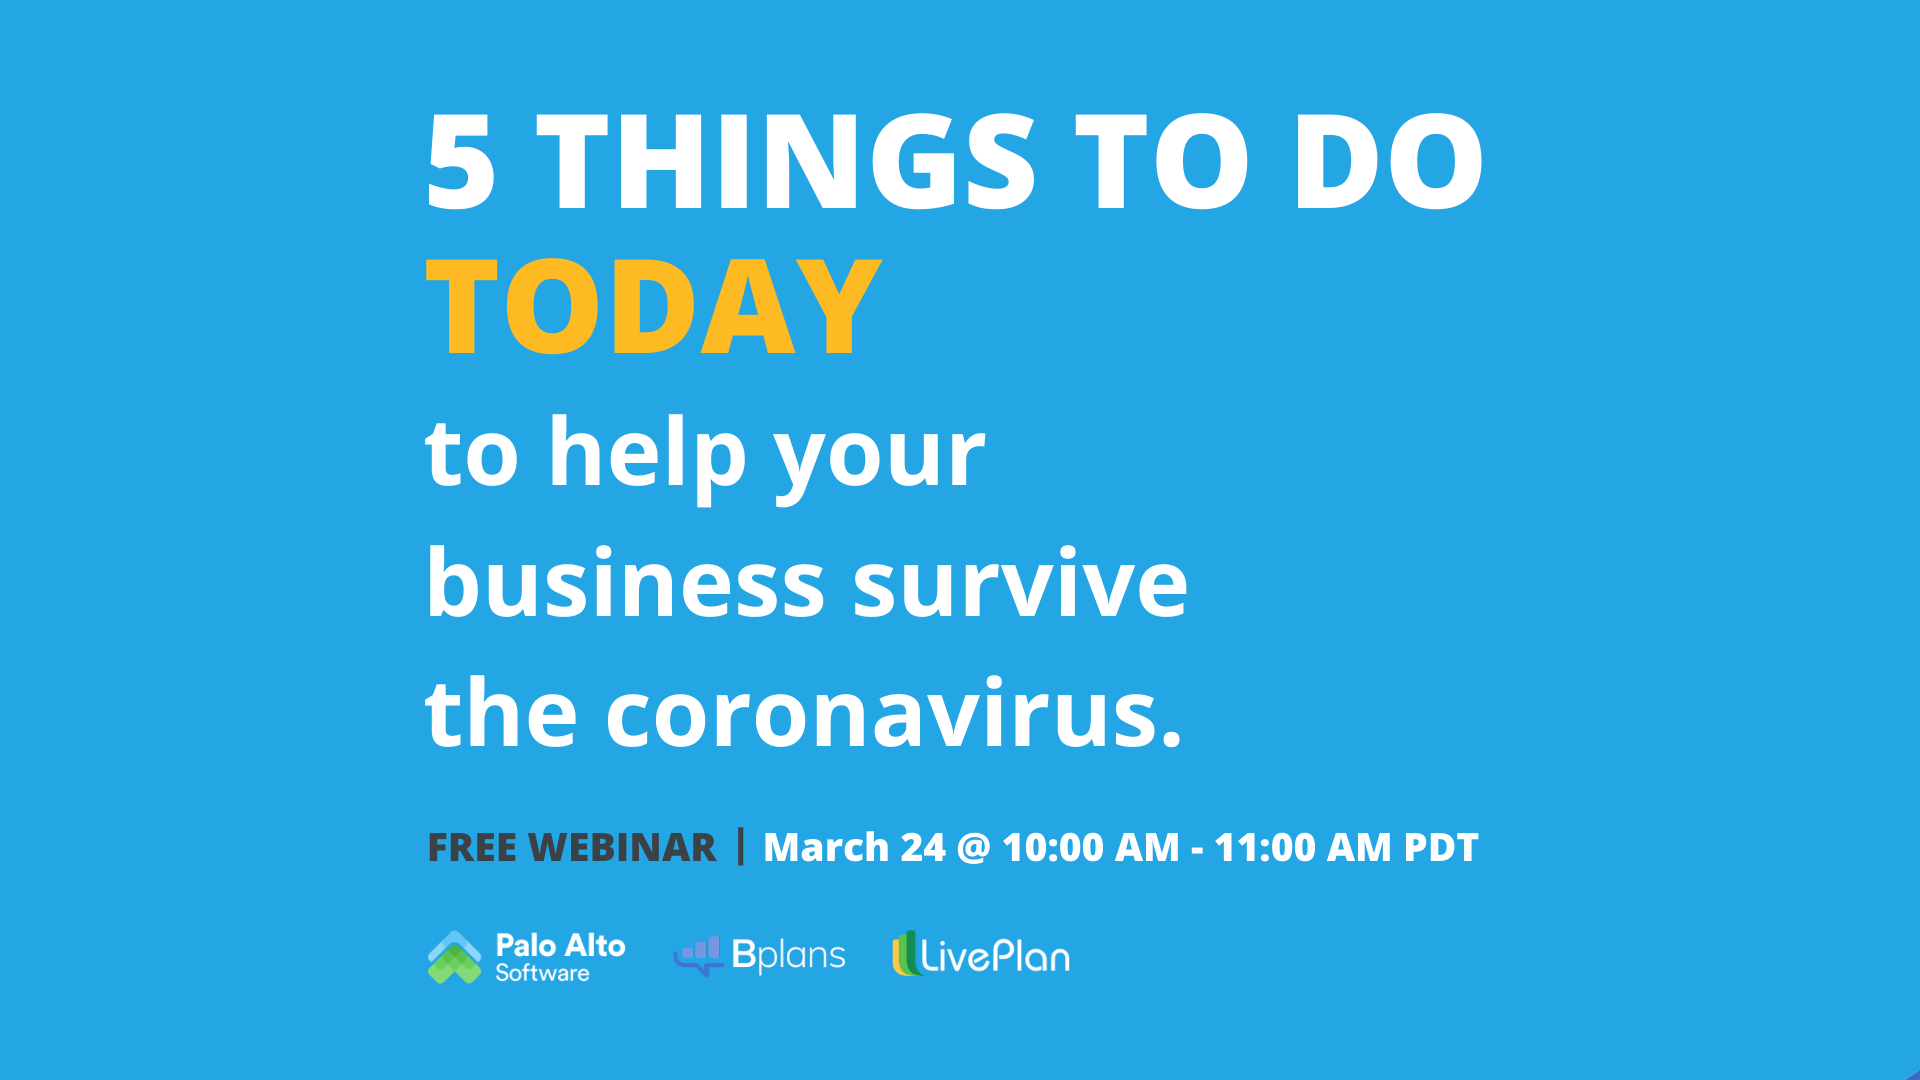 Bplans-webinar-5-things-to-do-today-on-coronavirus